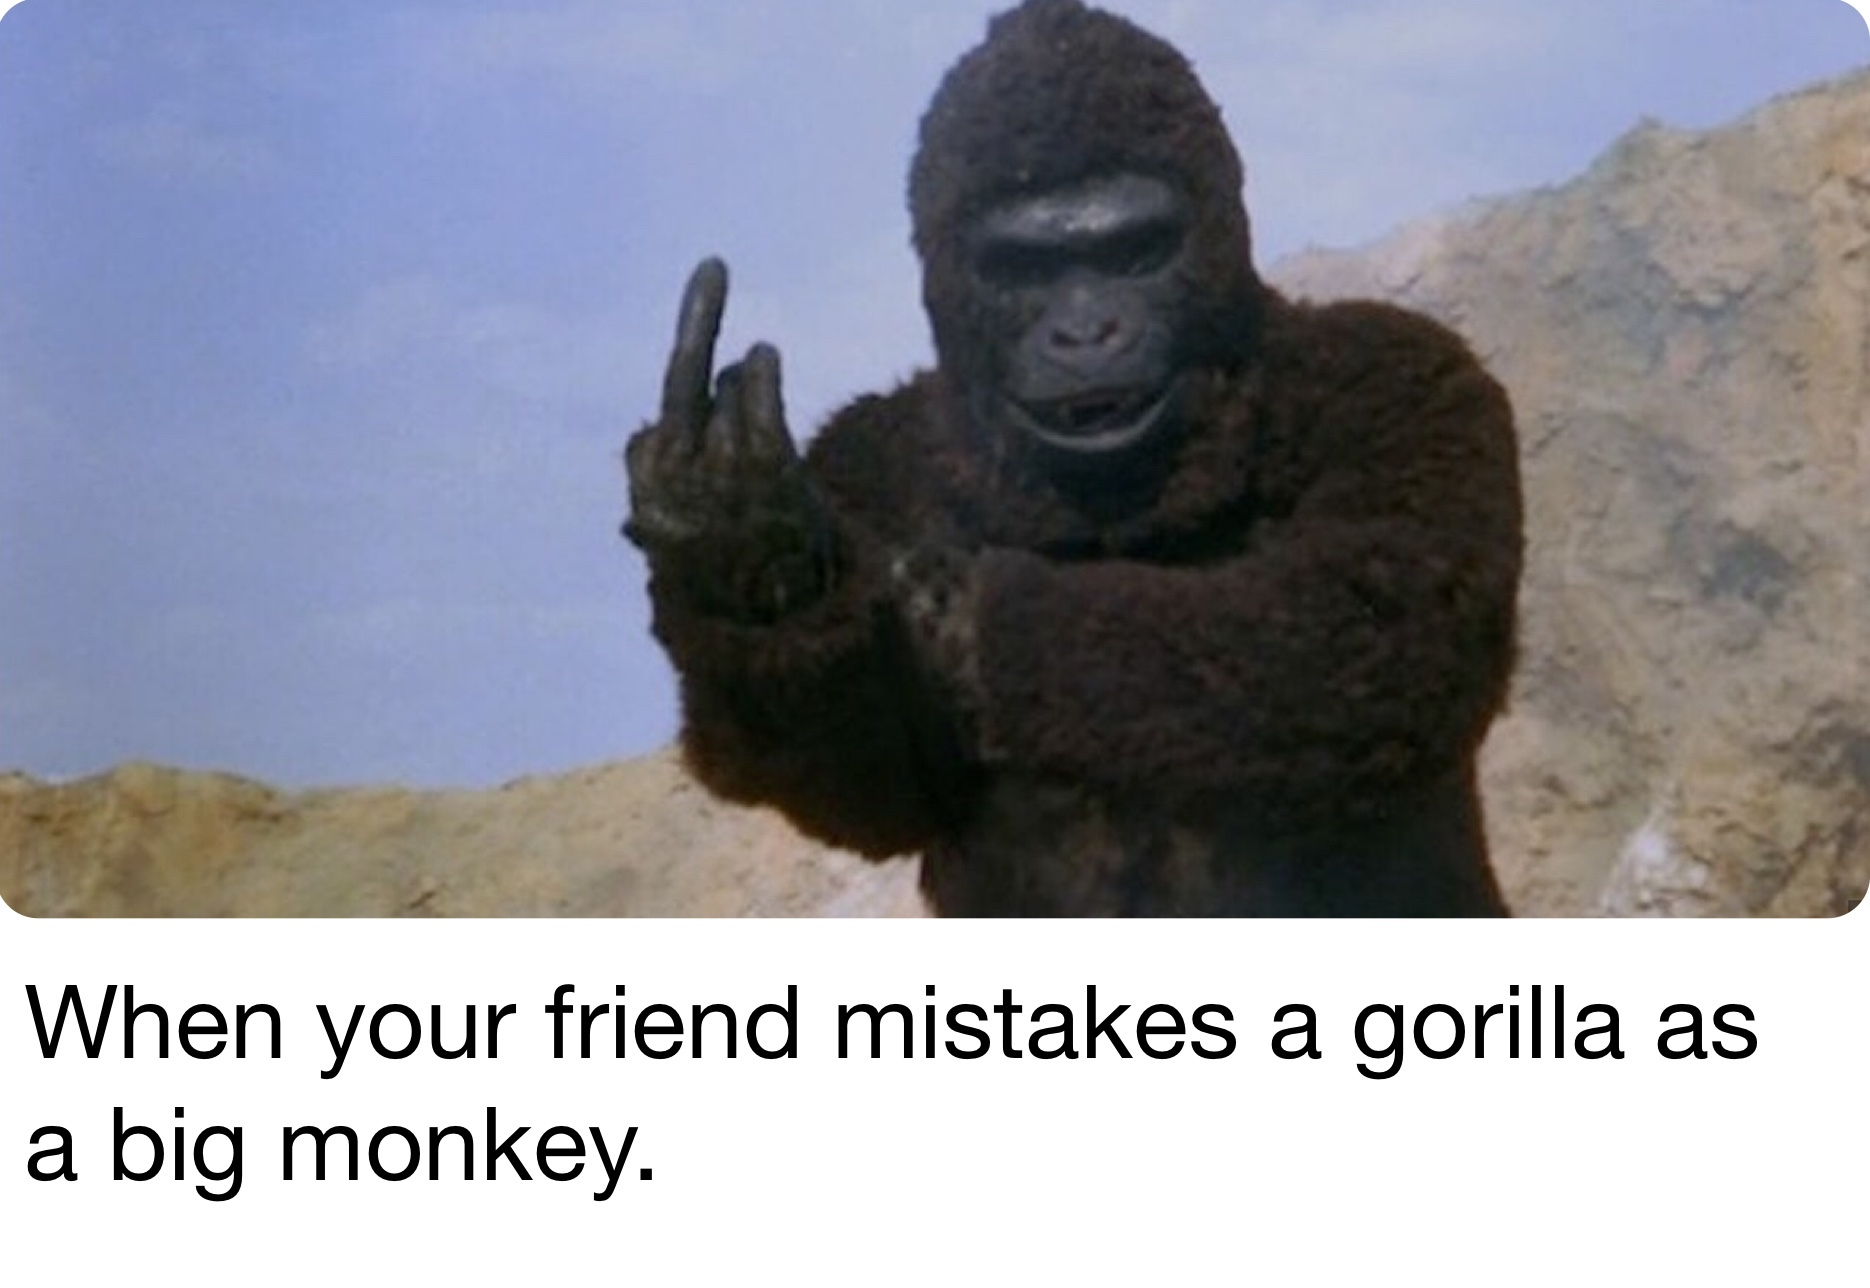 That's a big monkey - meme